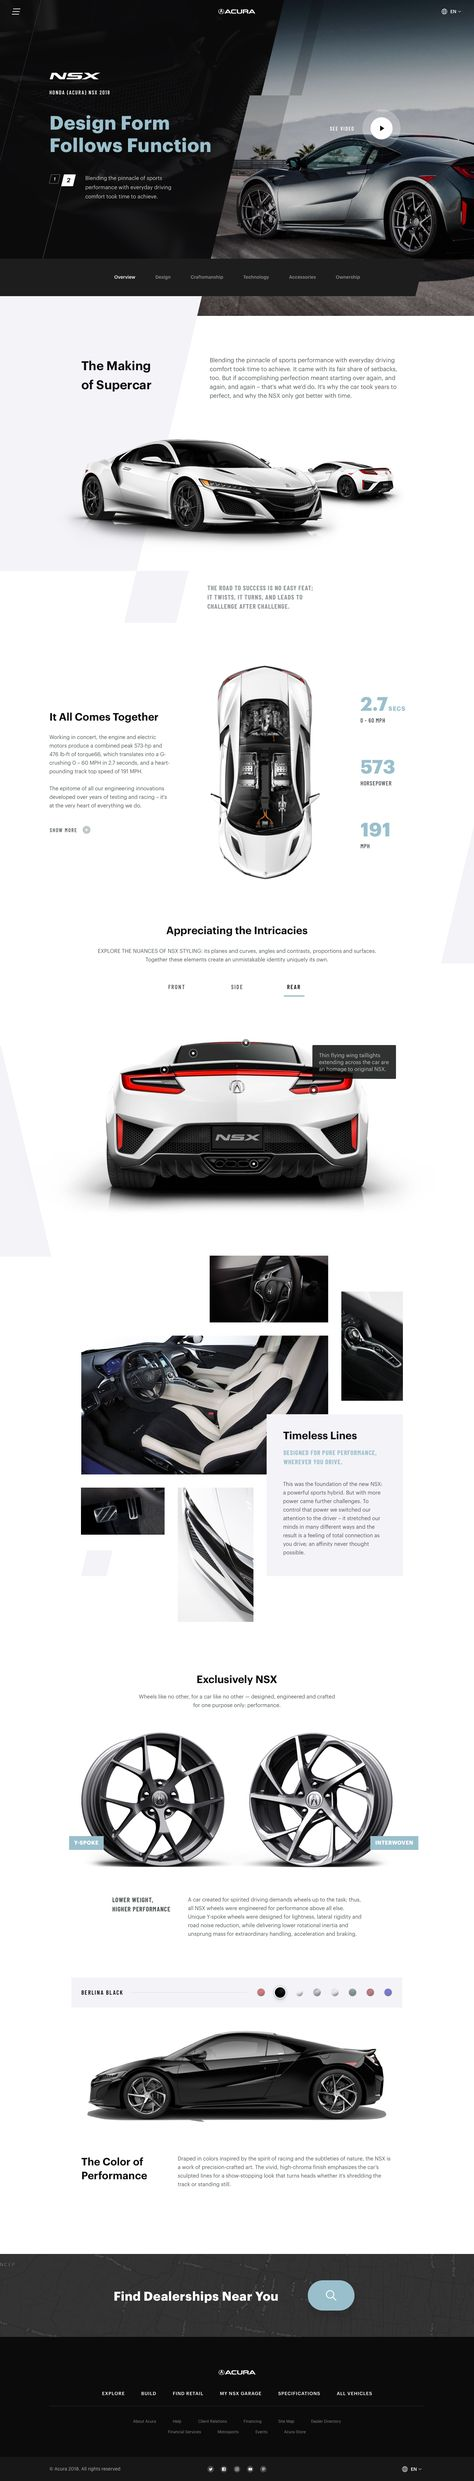 Acura NSX - Automotive Website Concept